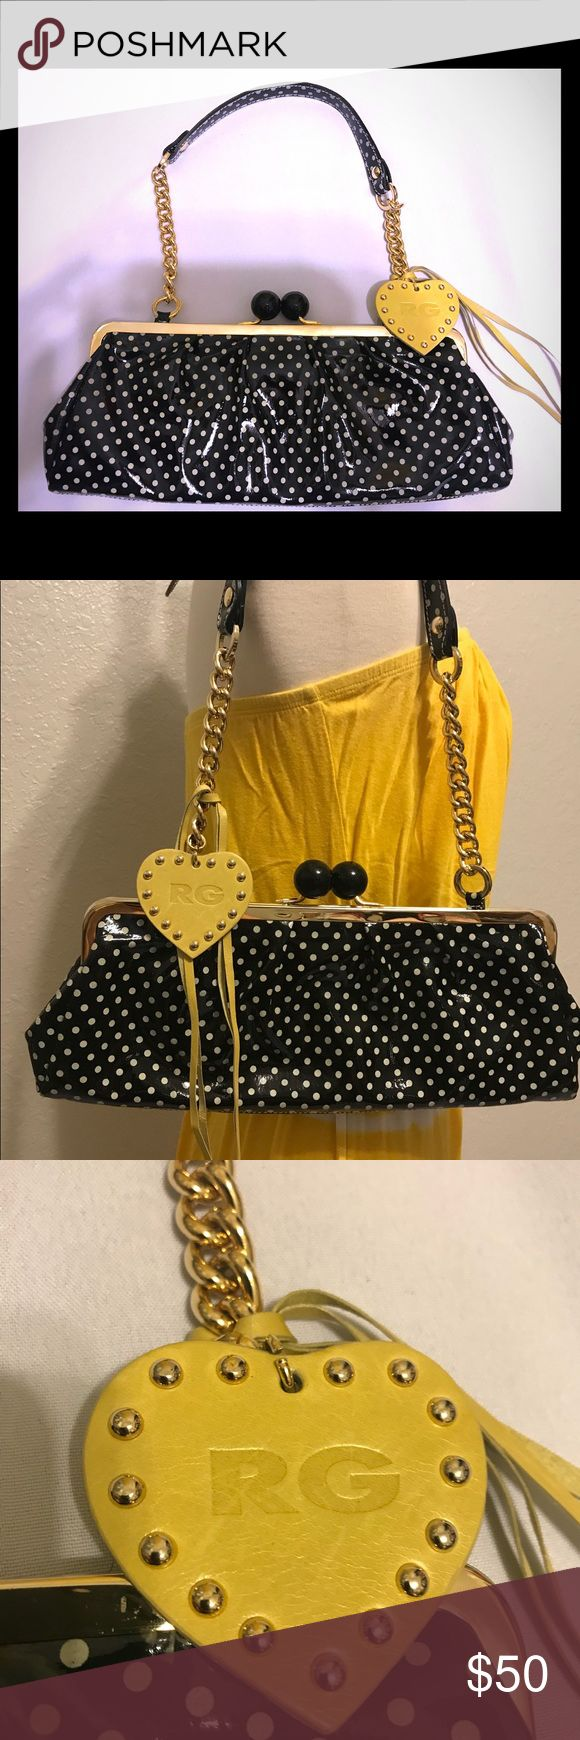 Roberta Gandolfi kiss-lock polka dot clutch bag Black with white polka dots, yellow heart with designer initials and two yellow leather cords. Hardware is gold tone. This is a great bag for a night of fun with the girls. It's quite the attention grabber. It's young, unique, 100% Italian patented leather. Made in Italy 🇮🇹  The kiss lock is black with an interior zippered pocket to keep keys, ID, cash, credit cards safe. Tiny bit of rusting in the interior, see picture.   14L x 5.25H x 5D…